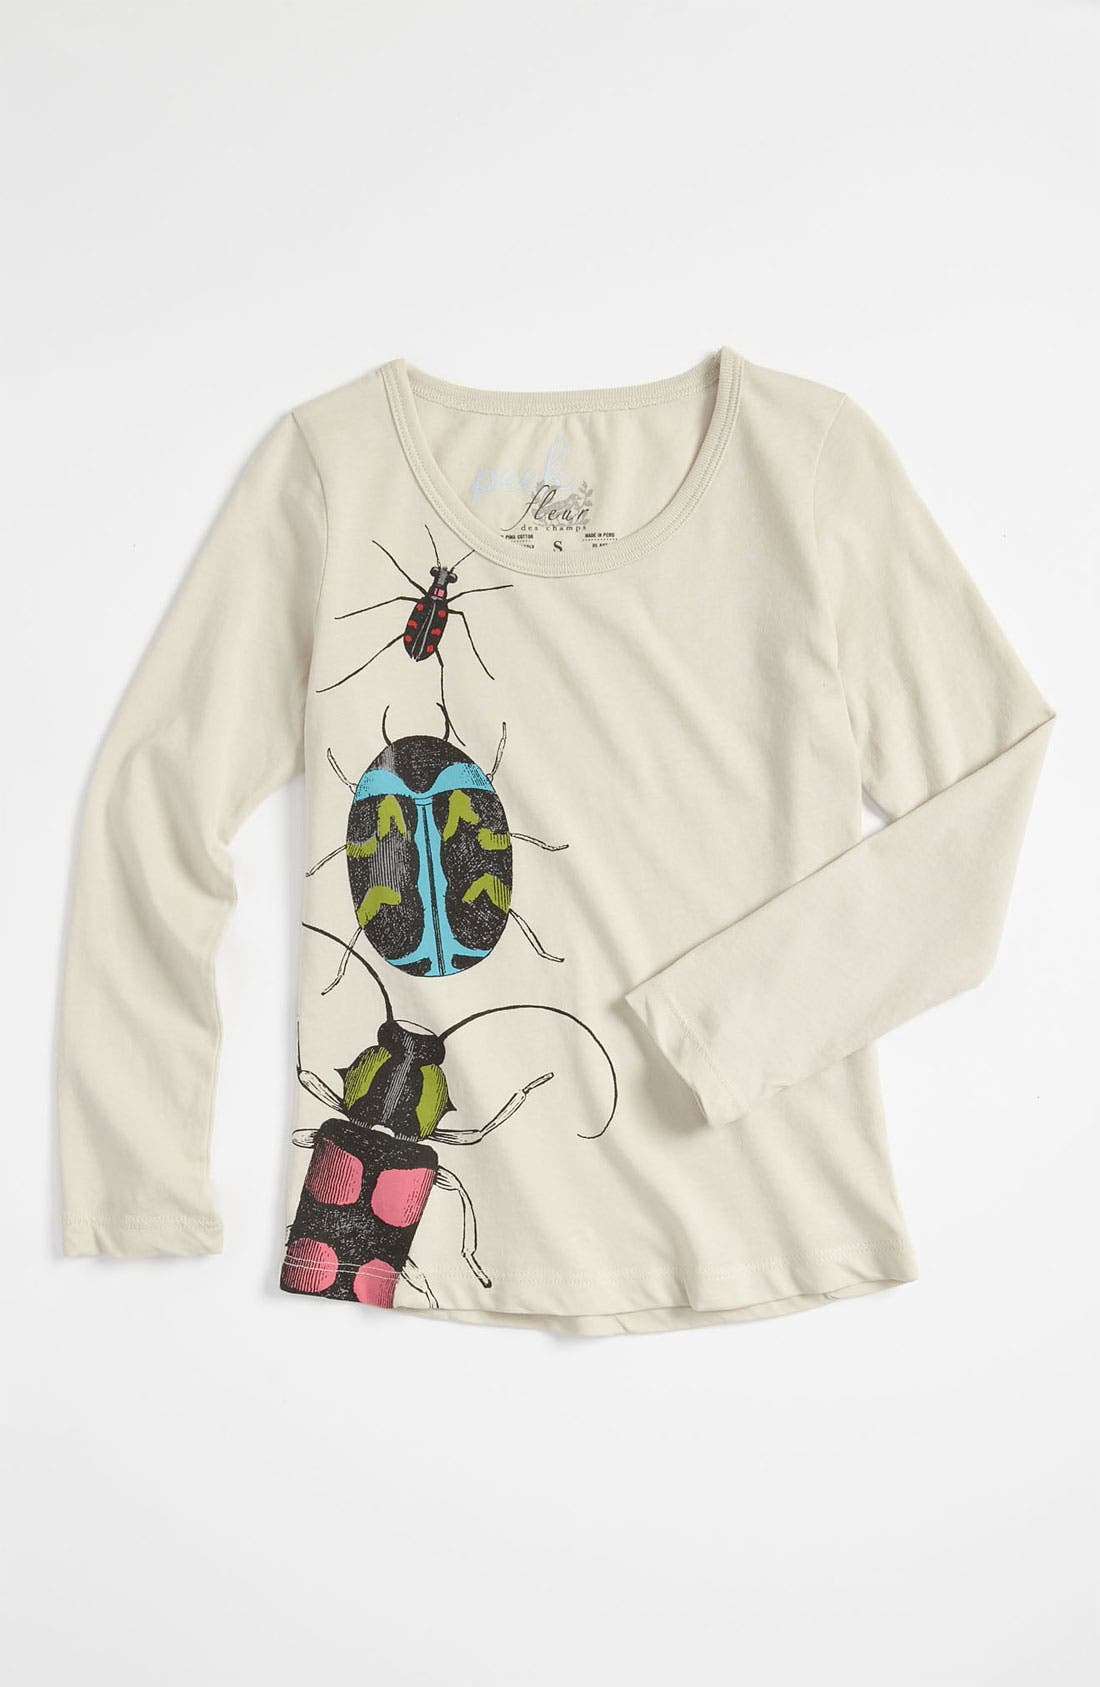 Alternate Image 1 Selected - Peek 'Beetle' Tee (Toddler, Little Girls & Big Girls)